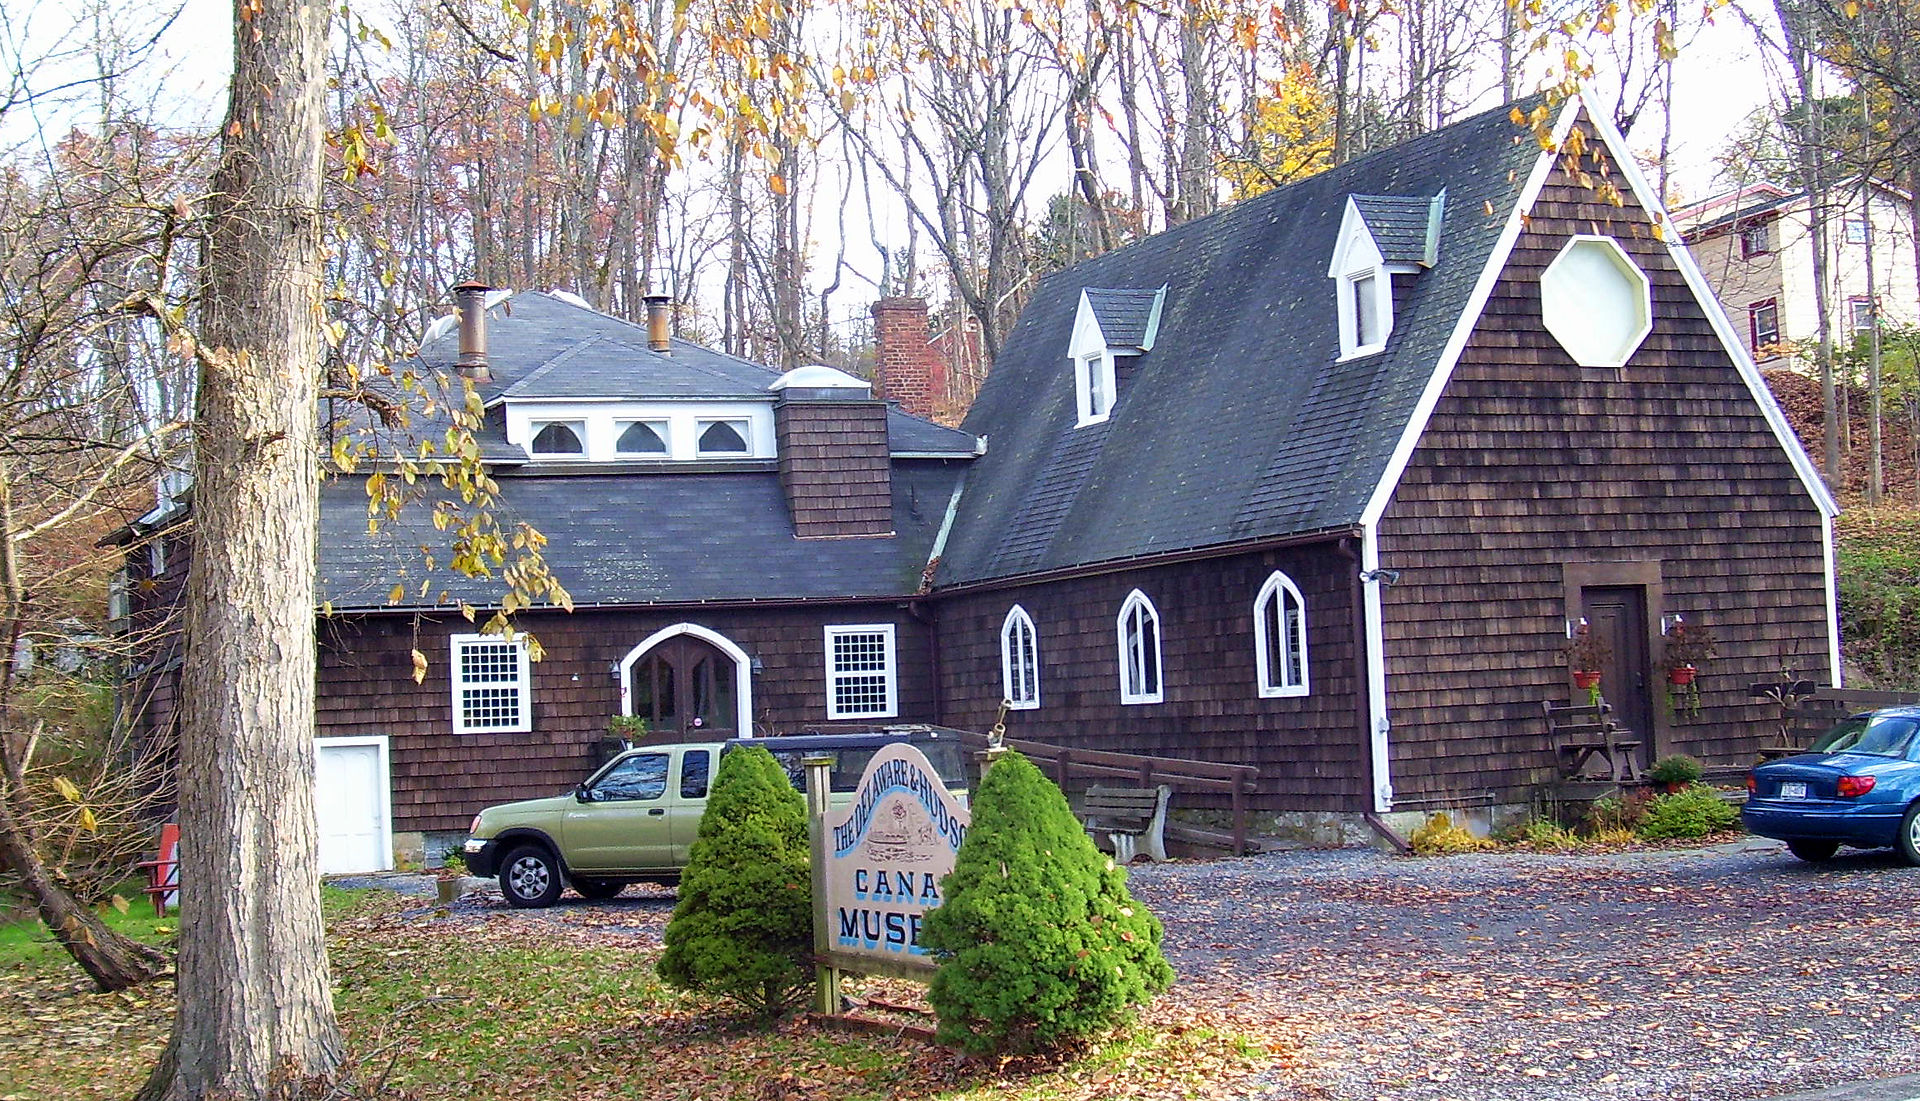 The Delaware and Hudson Canal Historical Society and Museum